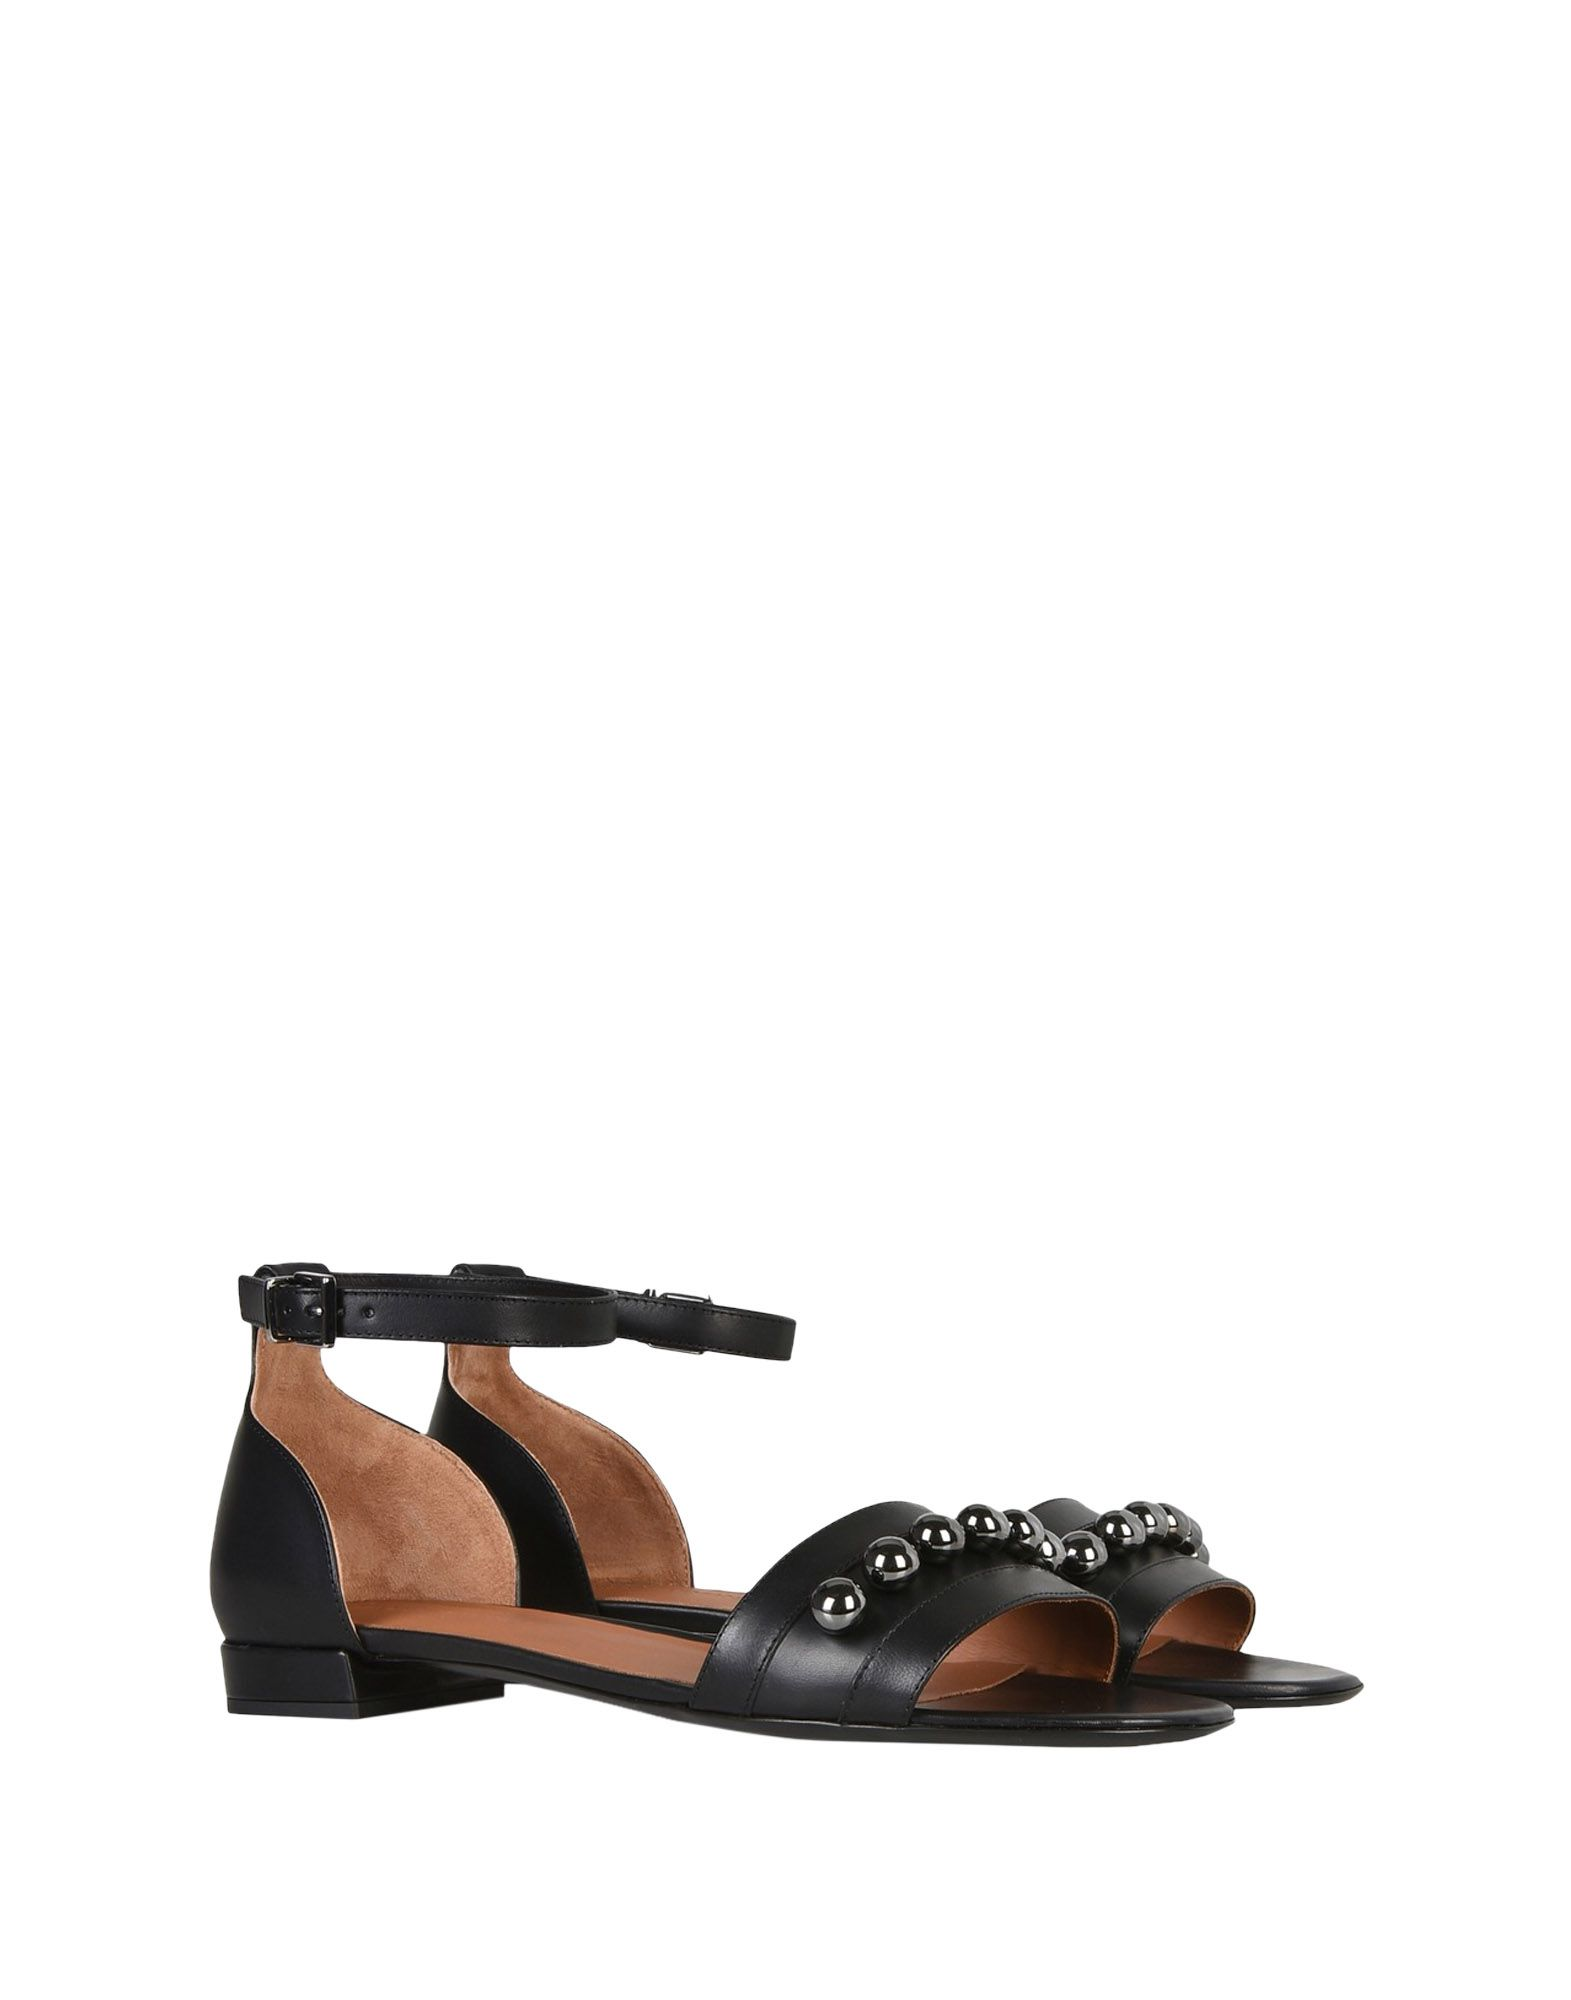 1735301 - NL2511 - OUT N ABOUT RAIN - CHAUSSURES - BottinesSorel ejYnyDWtOa